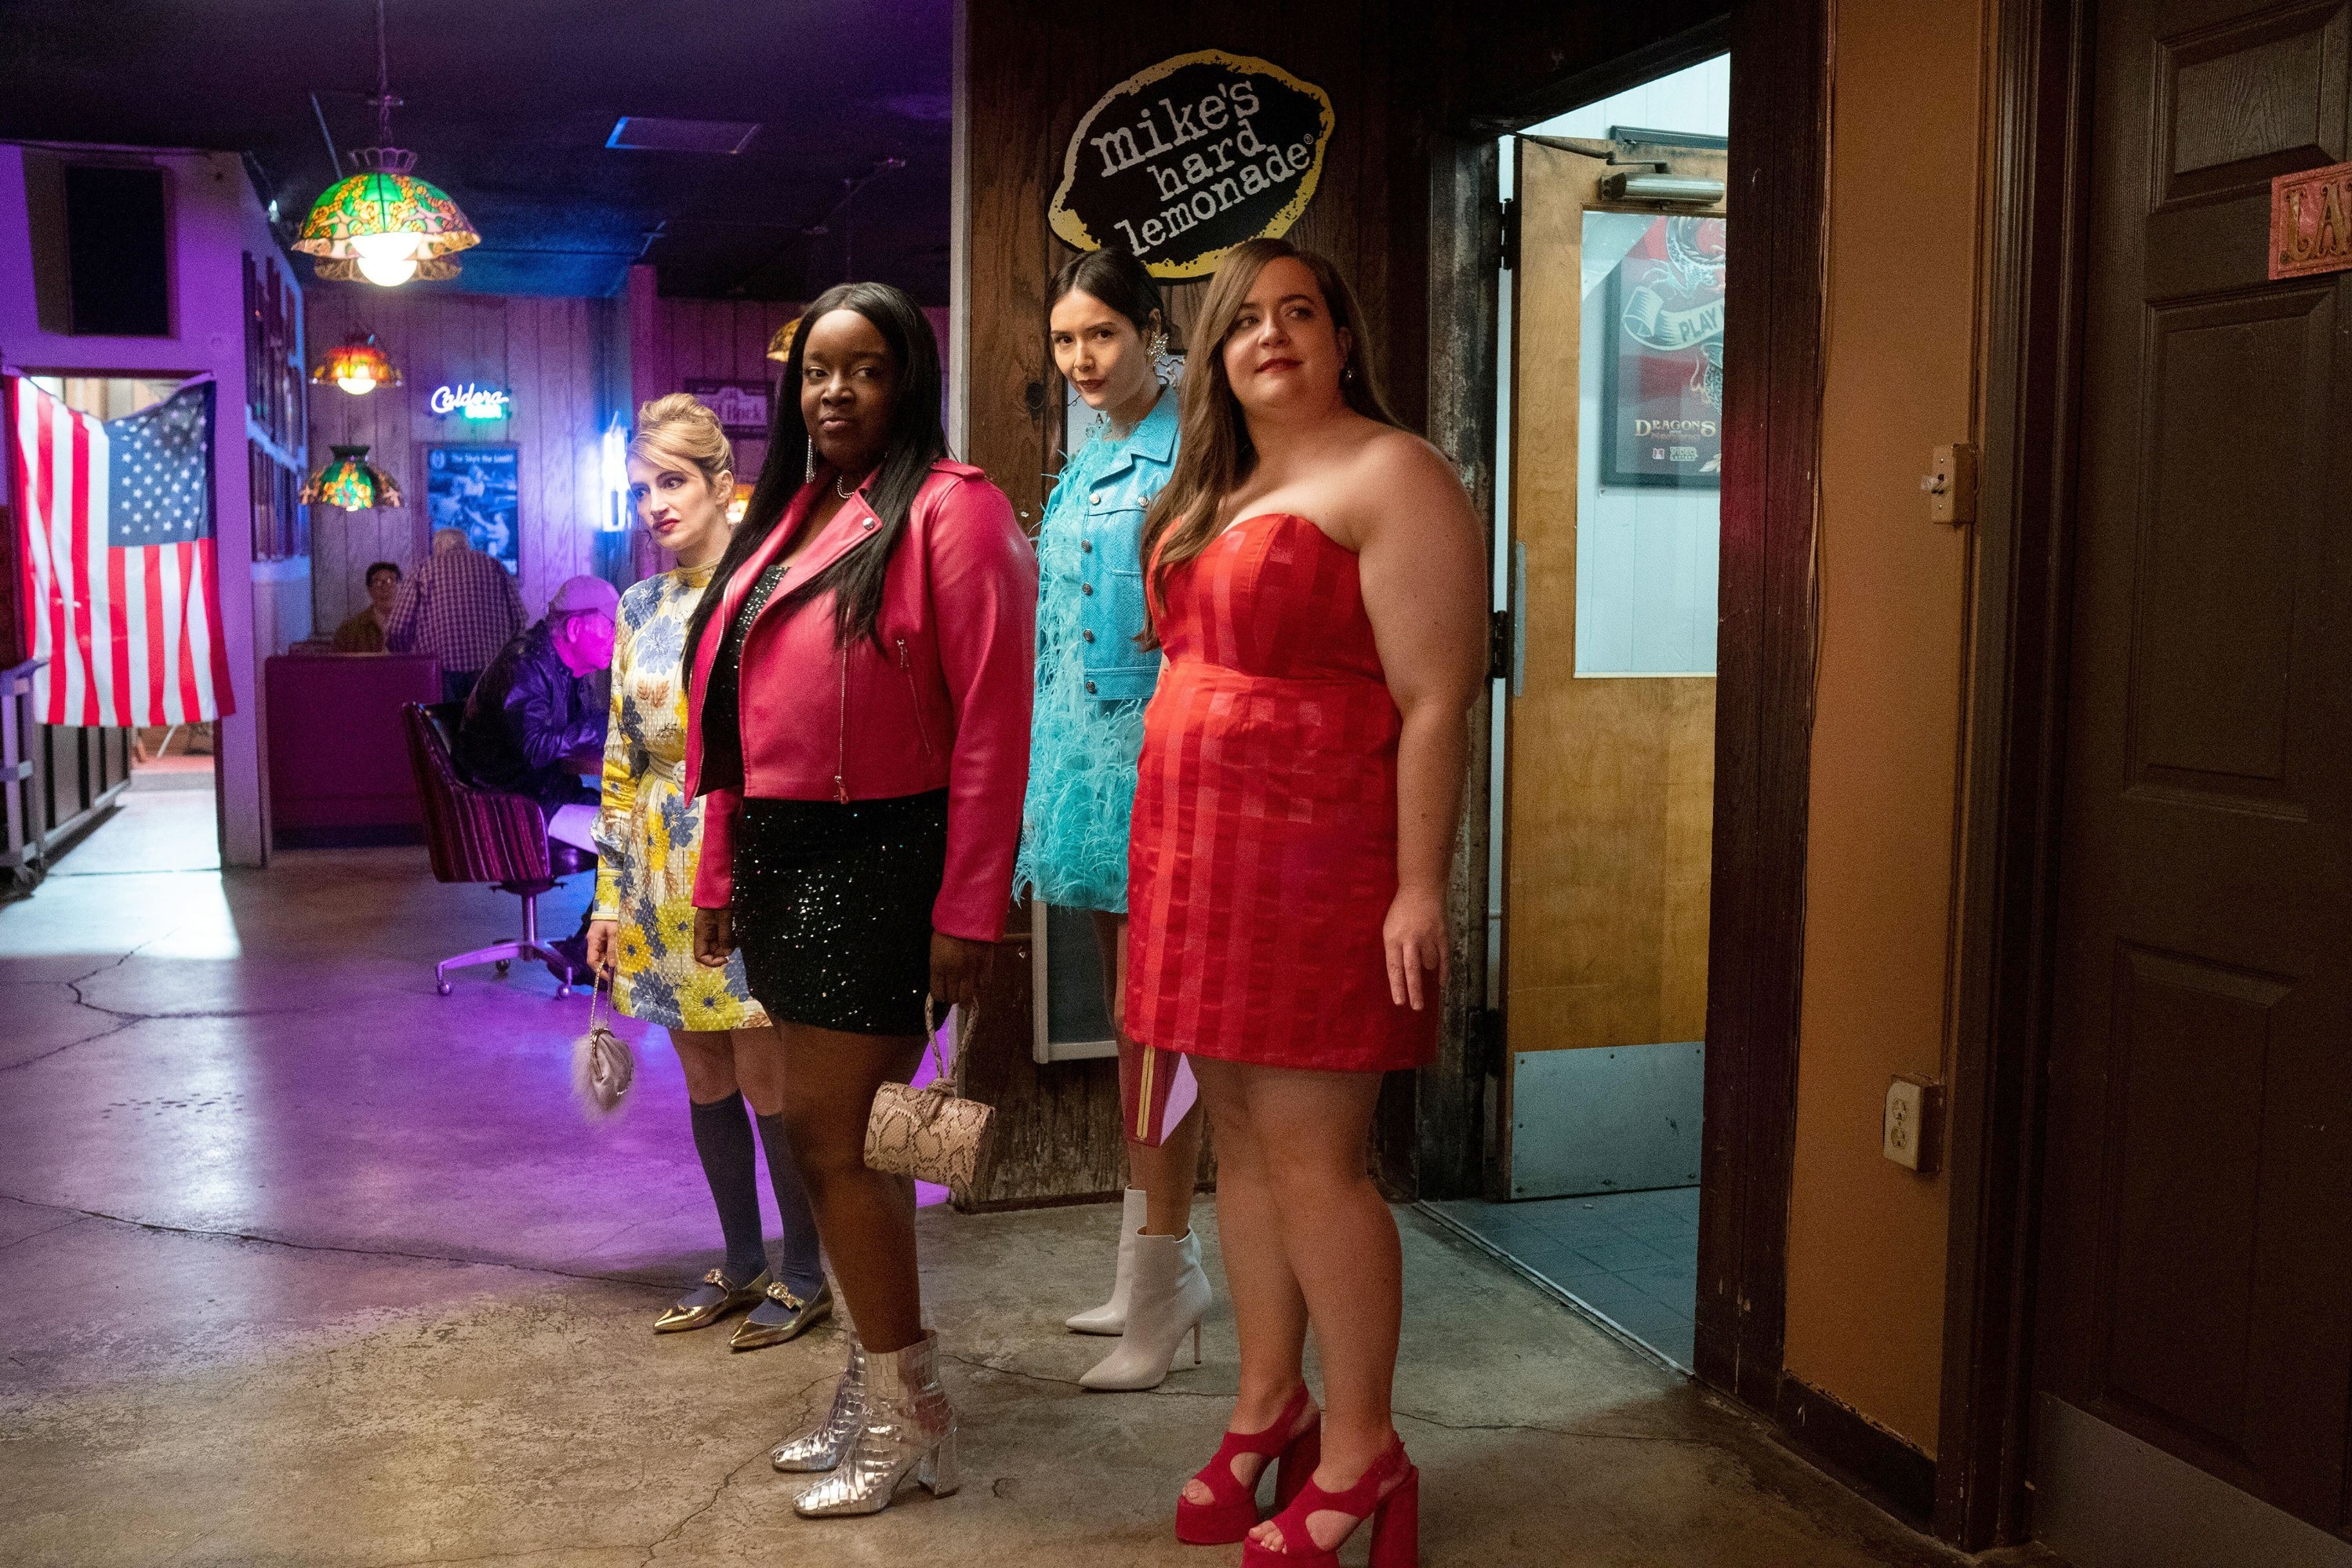 The cast of Shrill in a bar